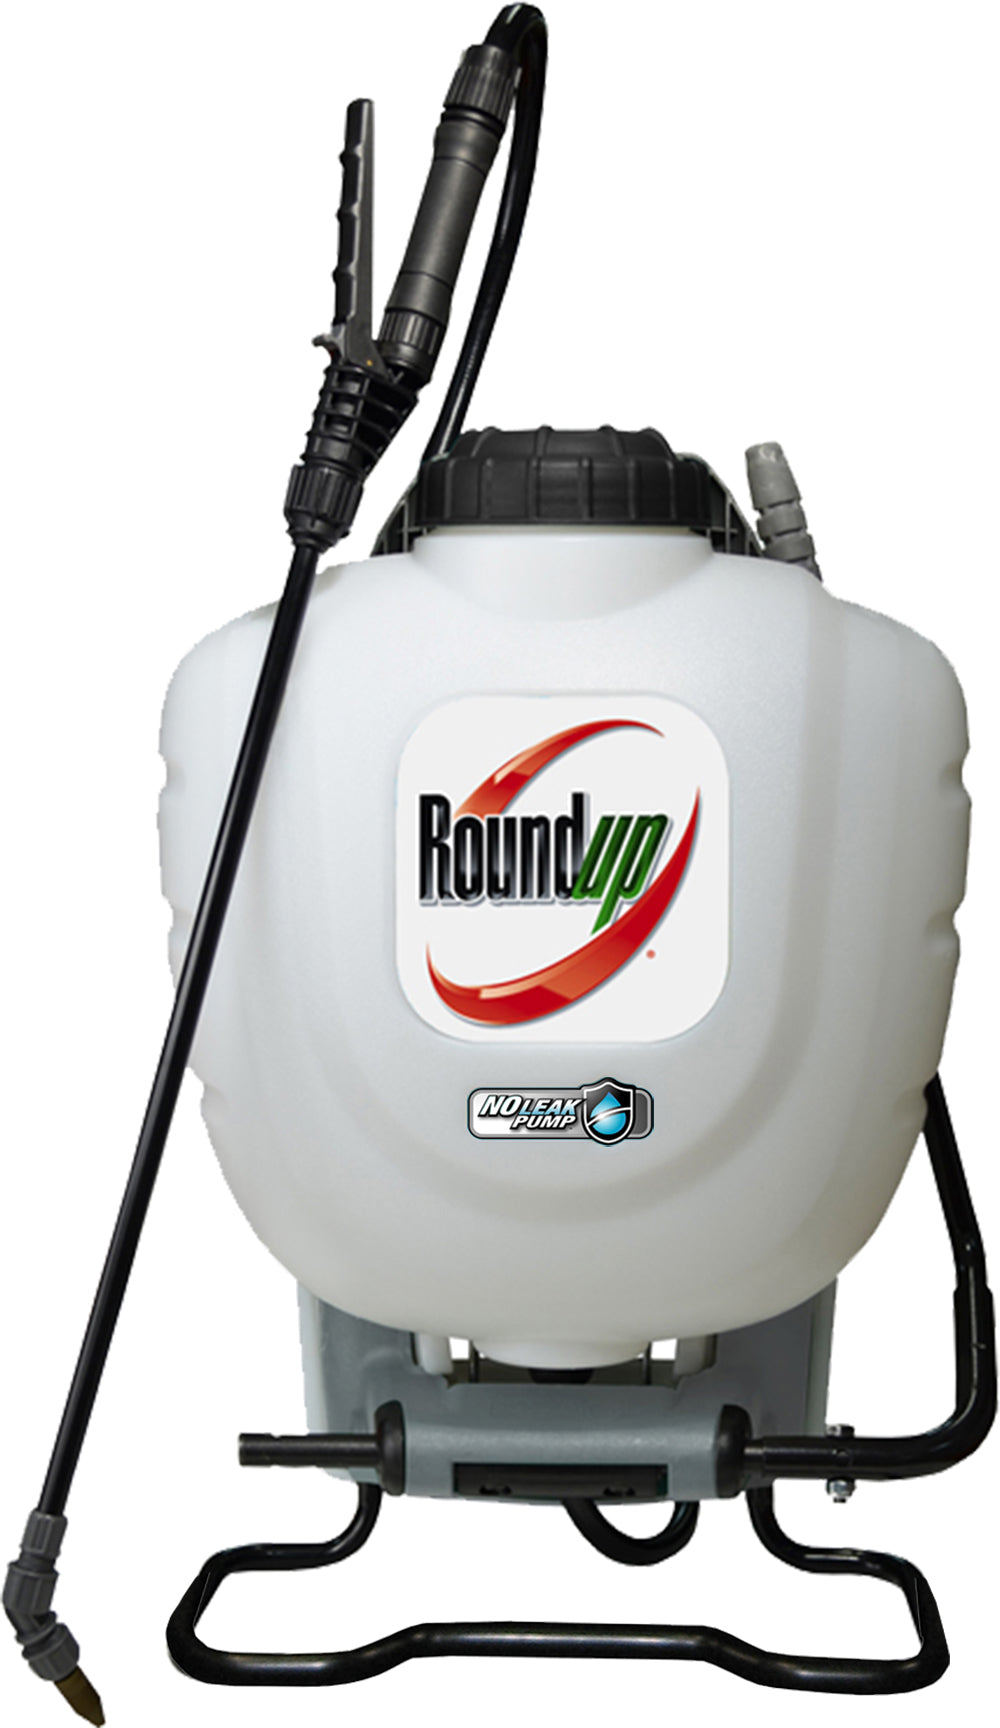 Roundup 4gal Backpack Sprayer